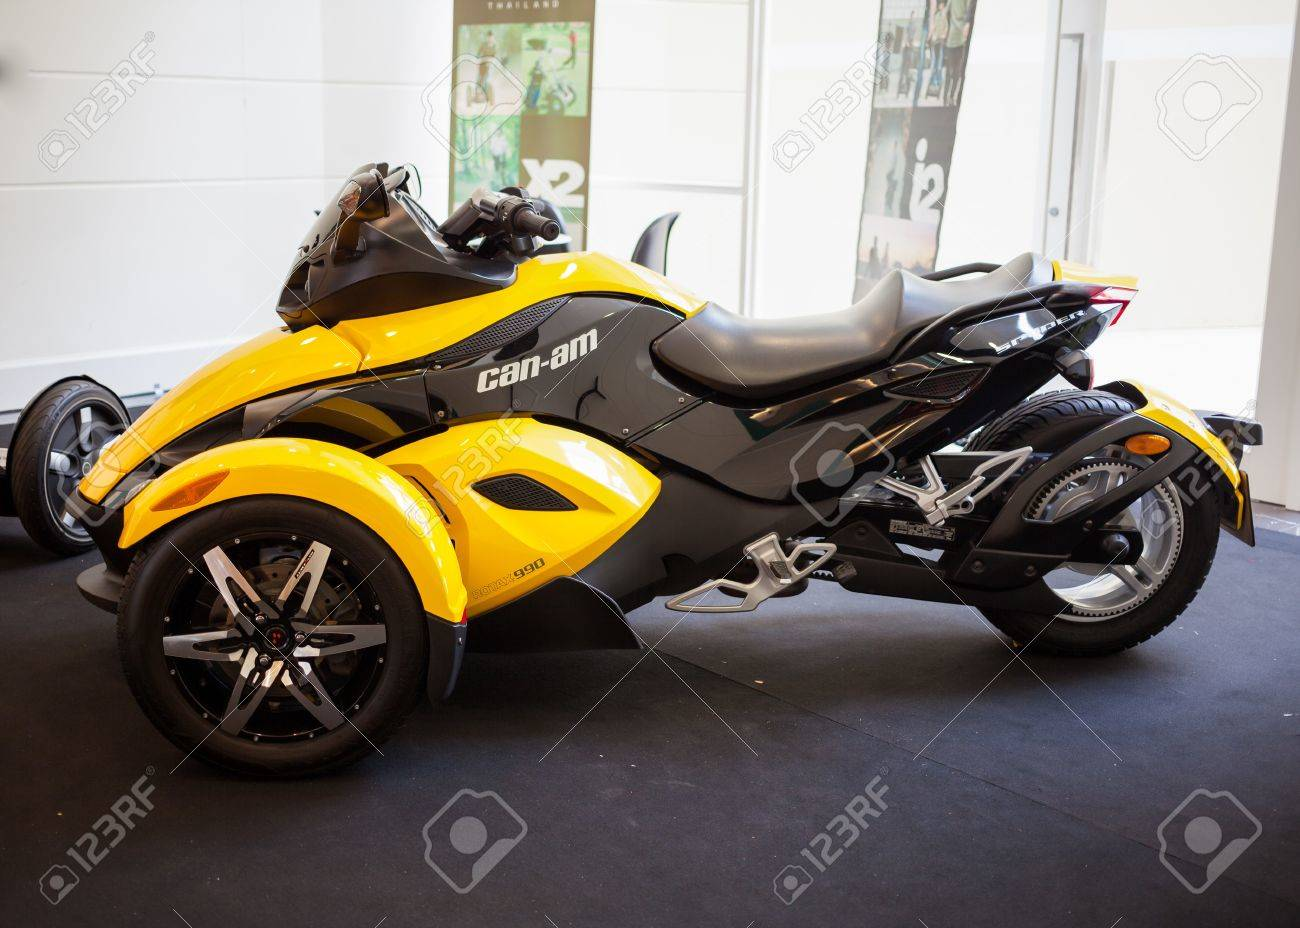 Can Am Roadster >> Bangkok September 22 The Can Am Spyder Rs Roadster On Display